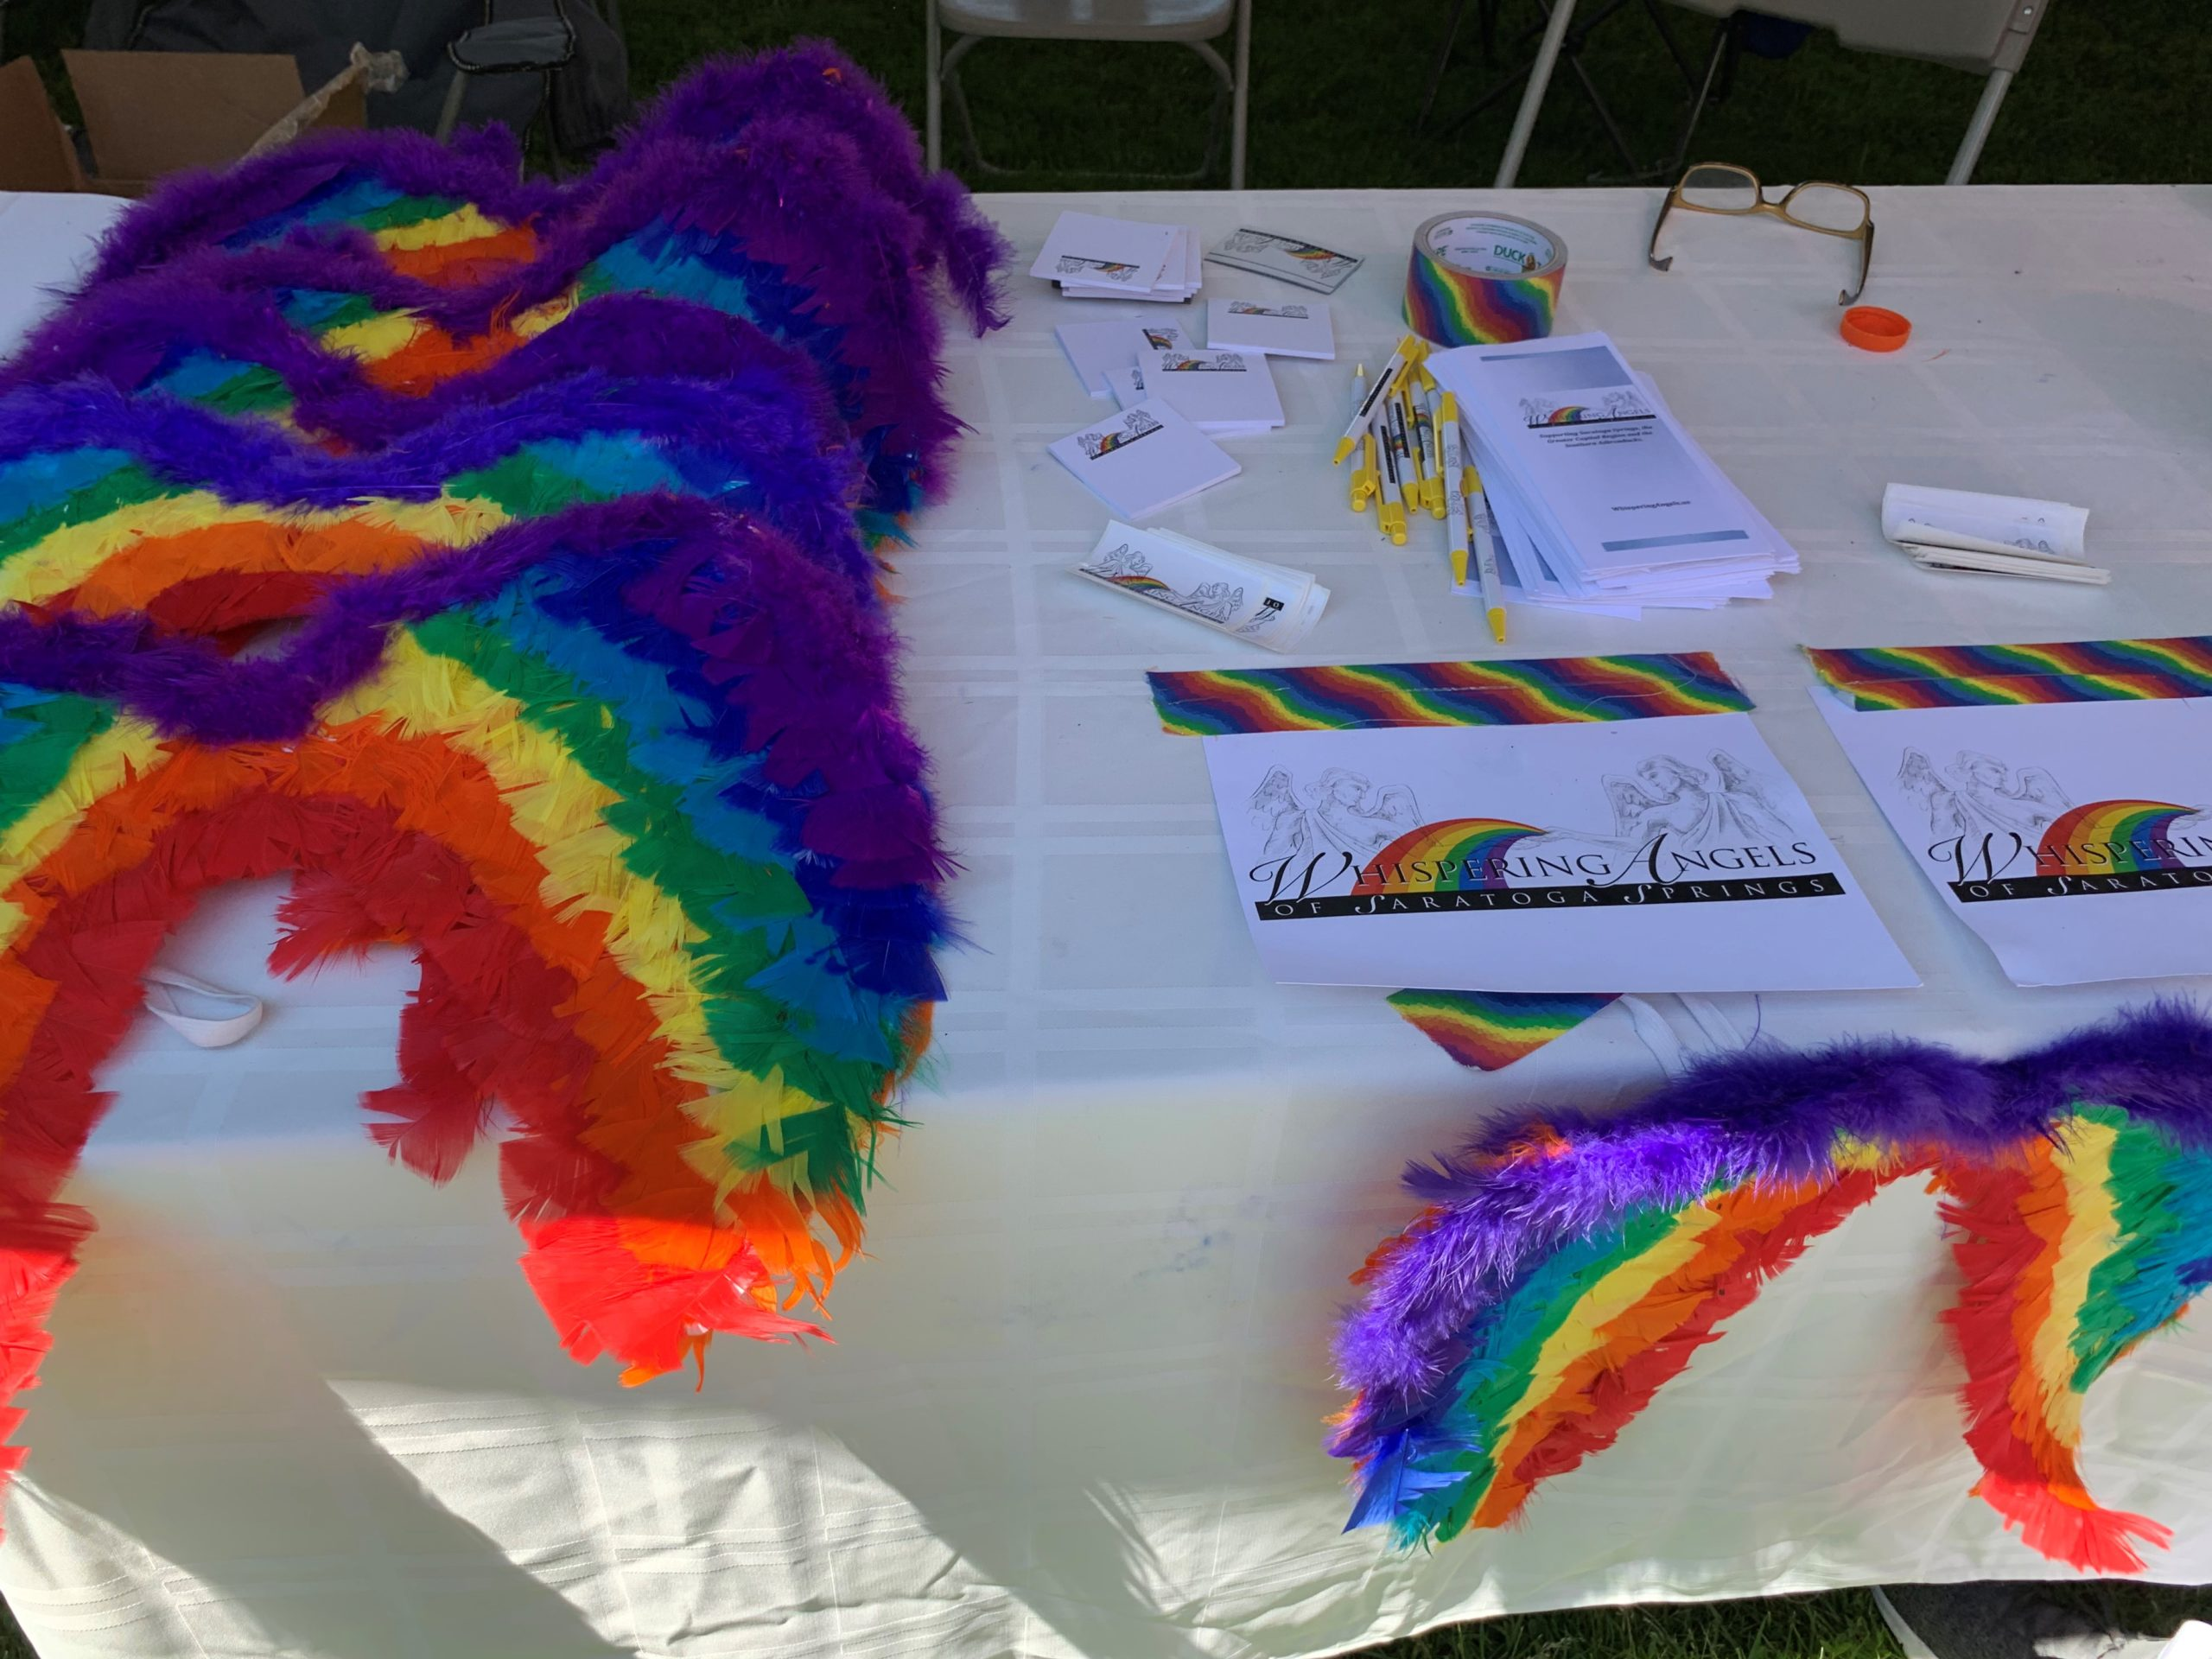 Whispering Angels Attends 2nd Capital Pride